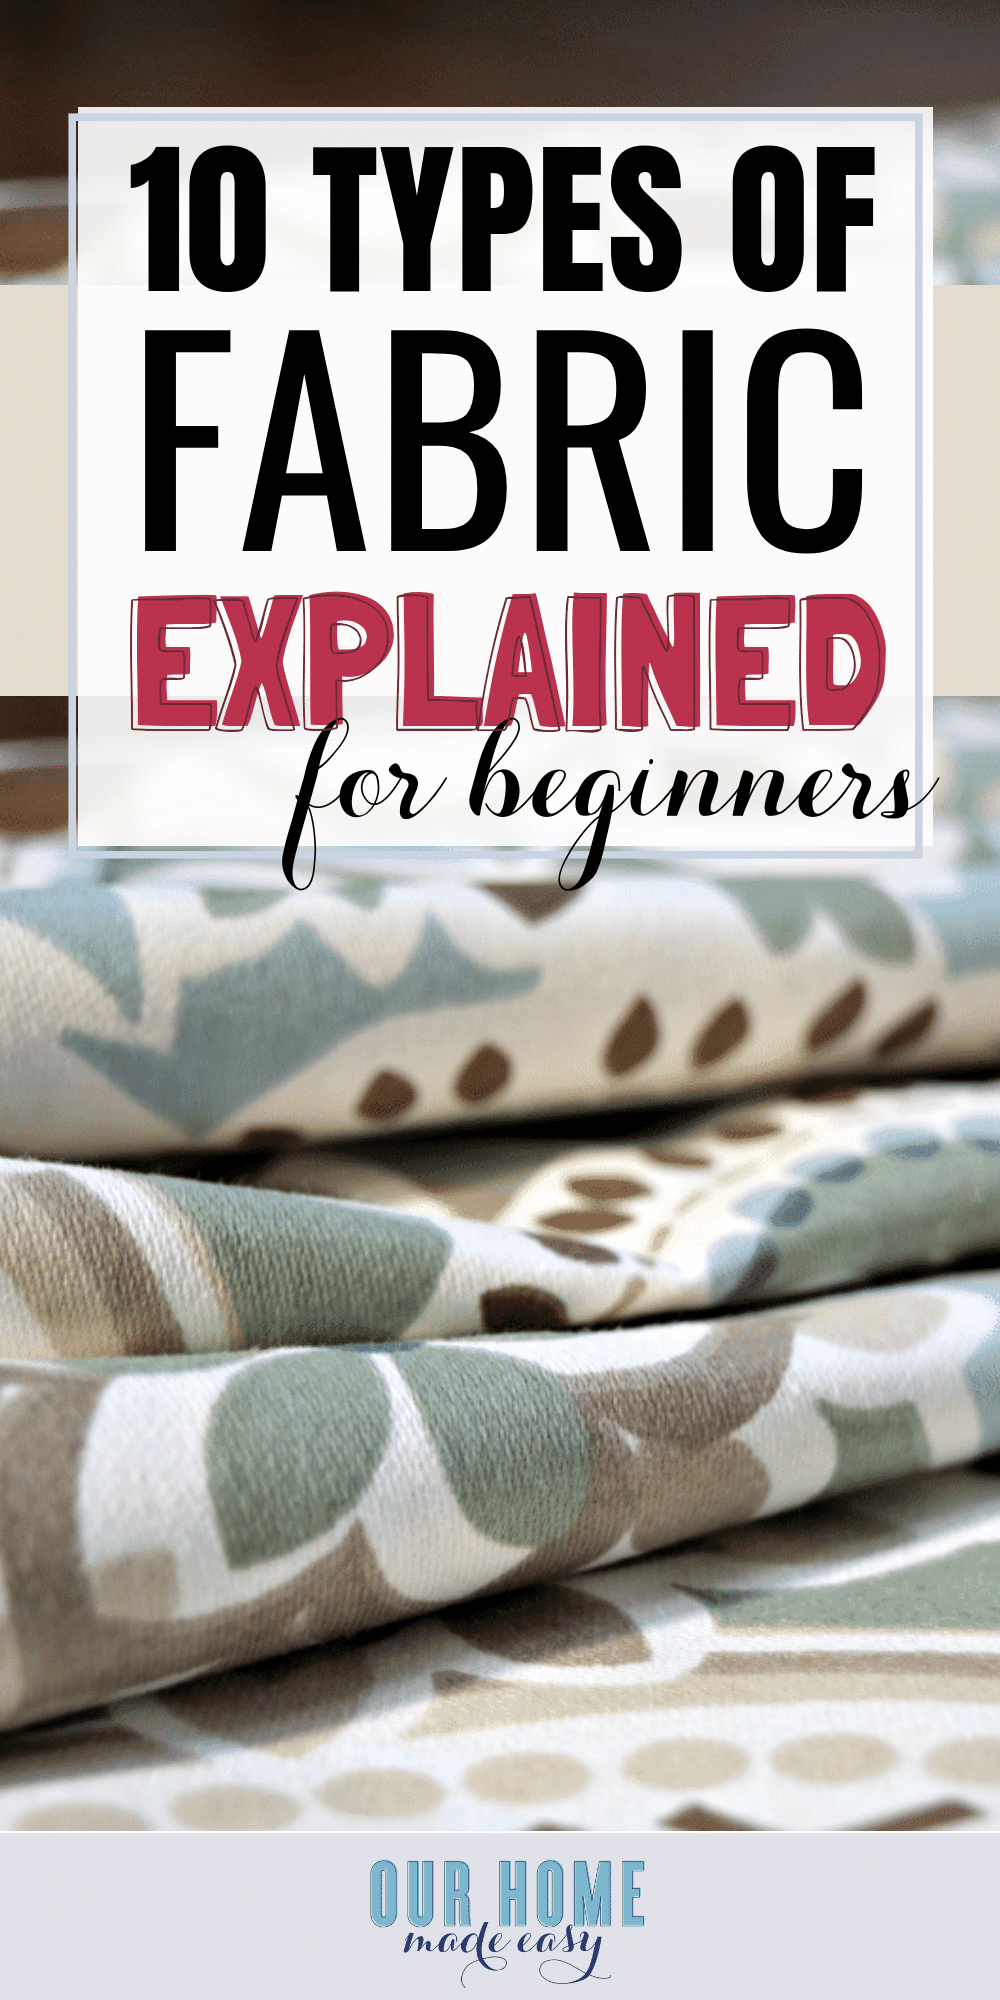 These 10 Types of Fabric Guide is perfect for beginners who want to start sewing to add some coziness to their home without spending too much money! #sewing #homedecor #ourhomemadeeasy